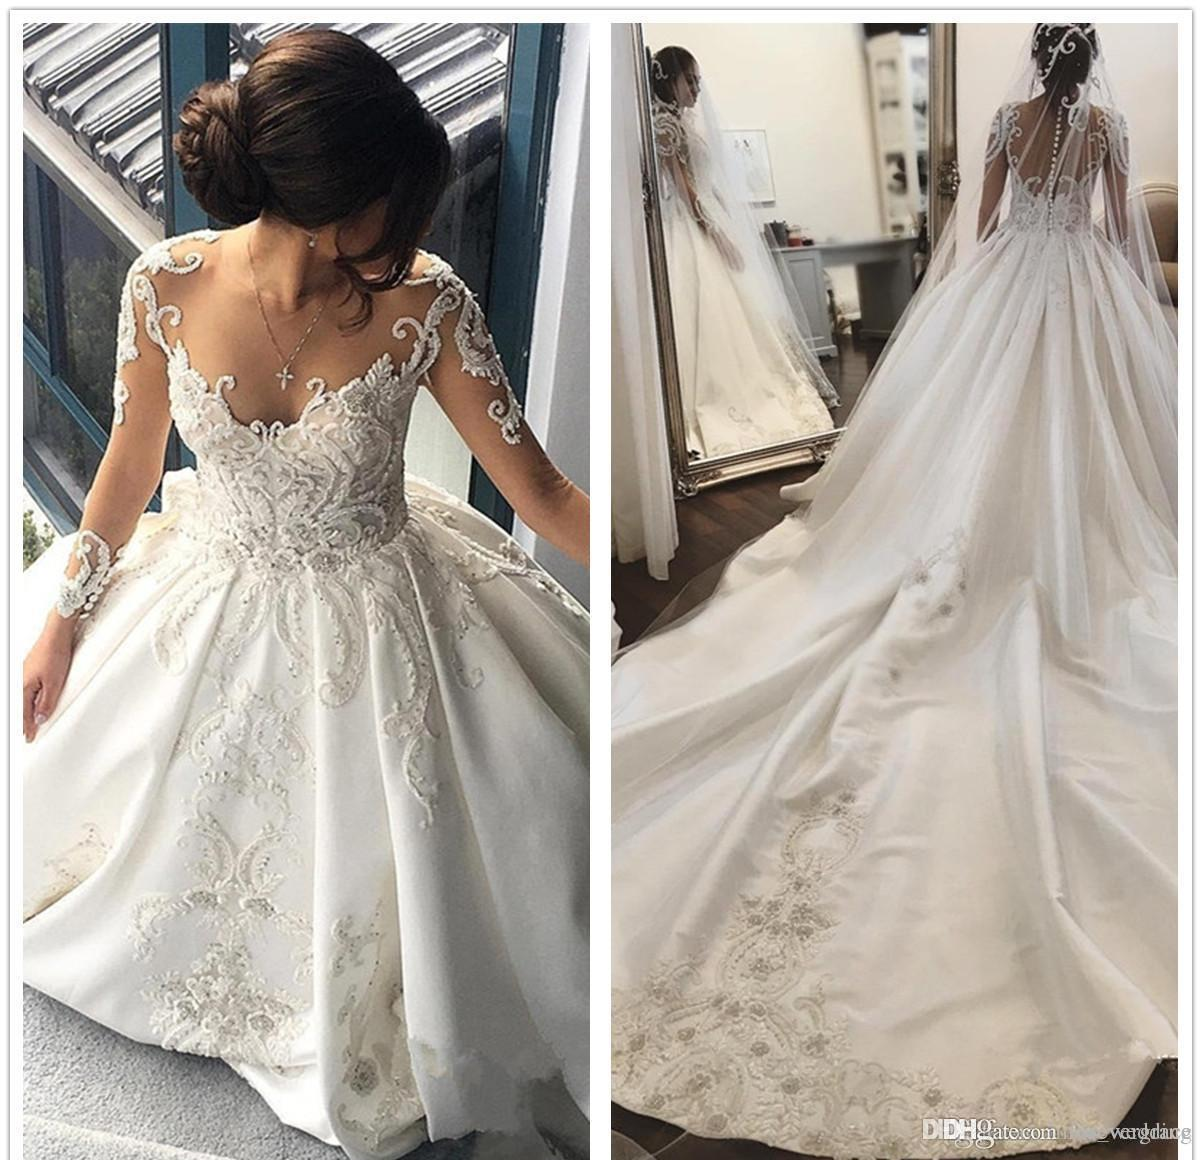 2019 Dubai Arabic Wedding Dresses Lace Appliques Off: 2019 Vintage Arabic Dubai Princess Wedding Dress Sheer